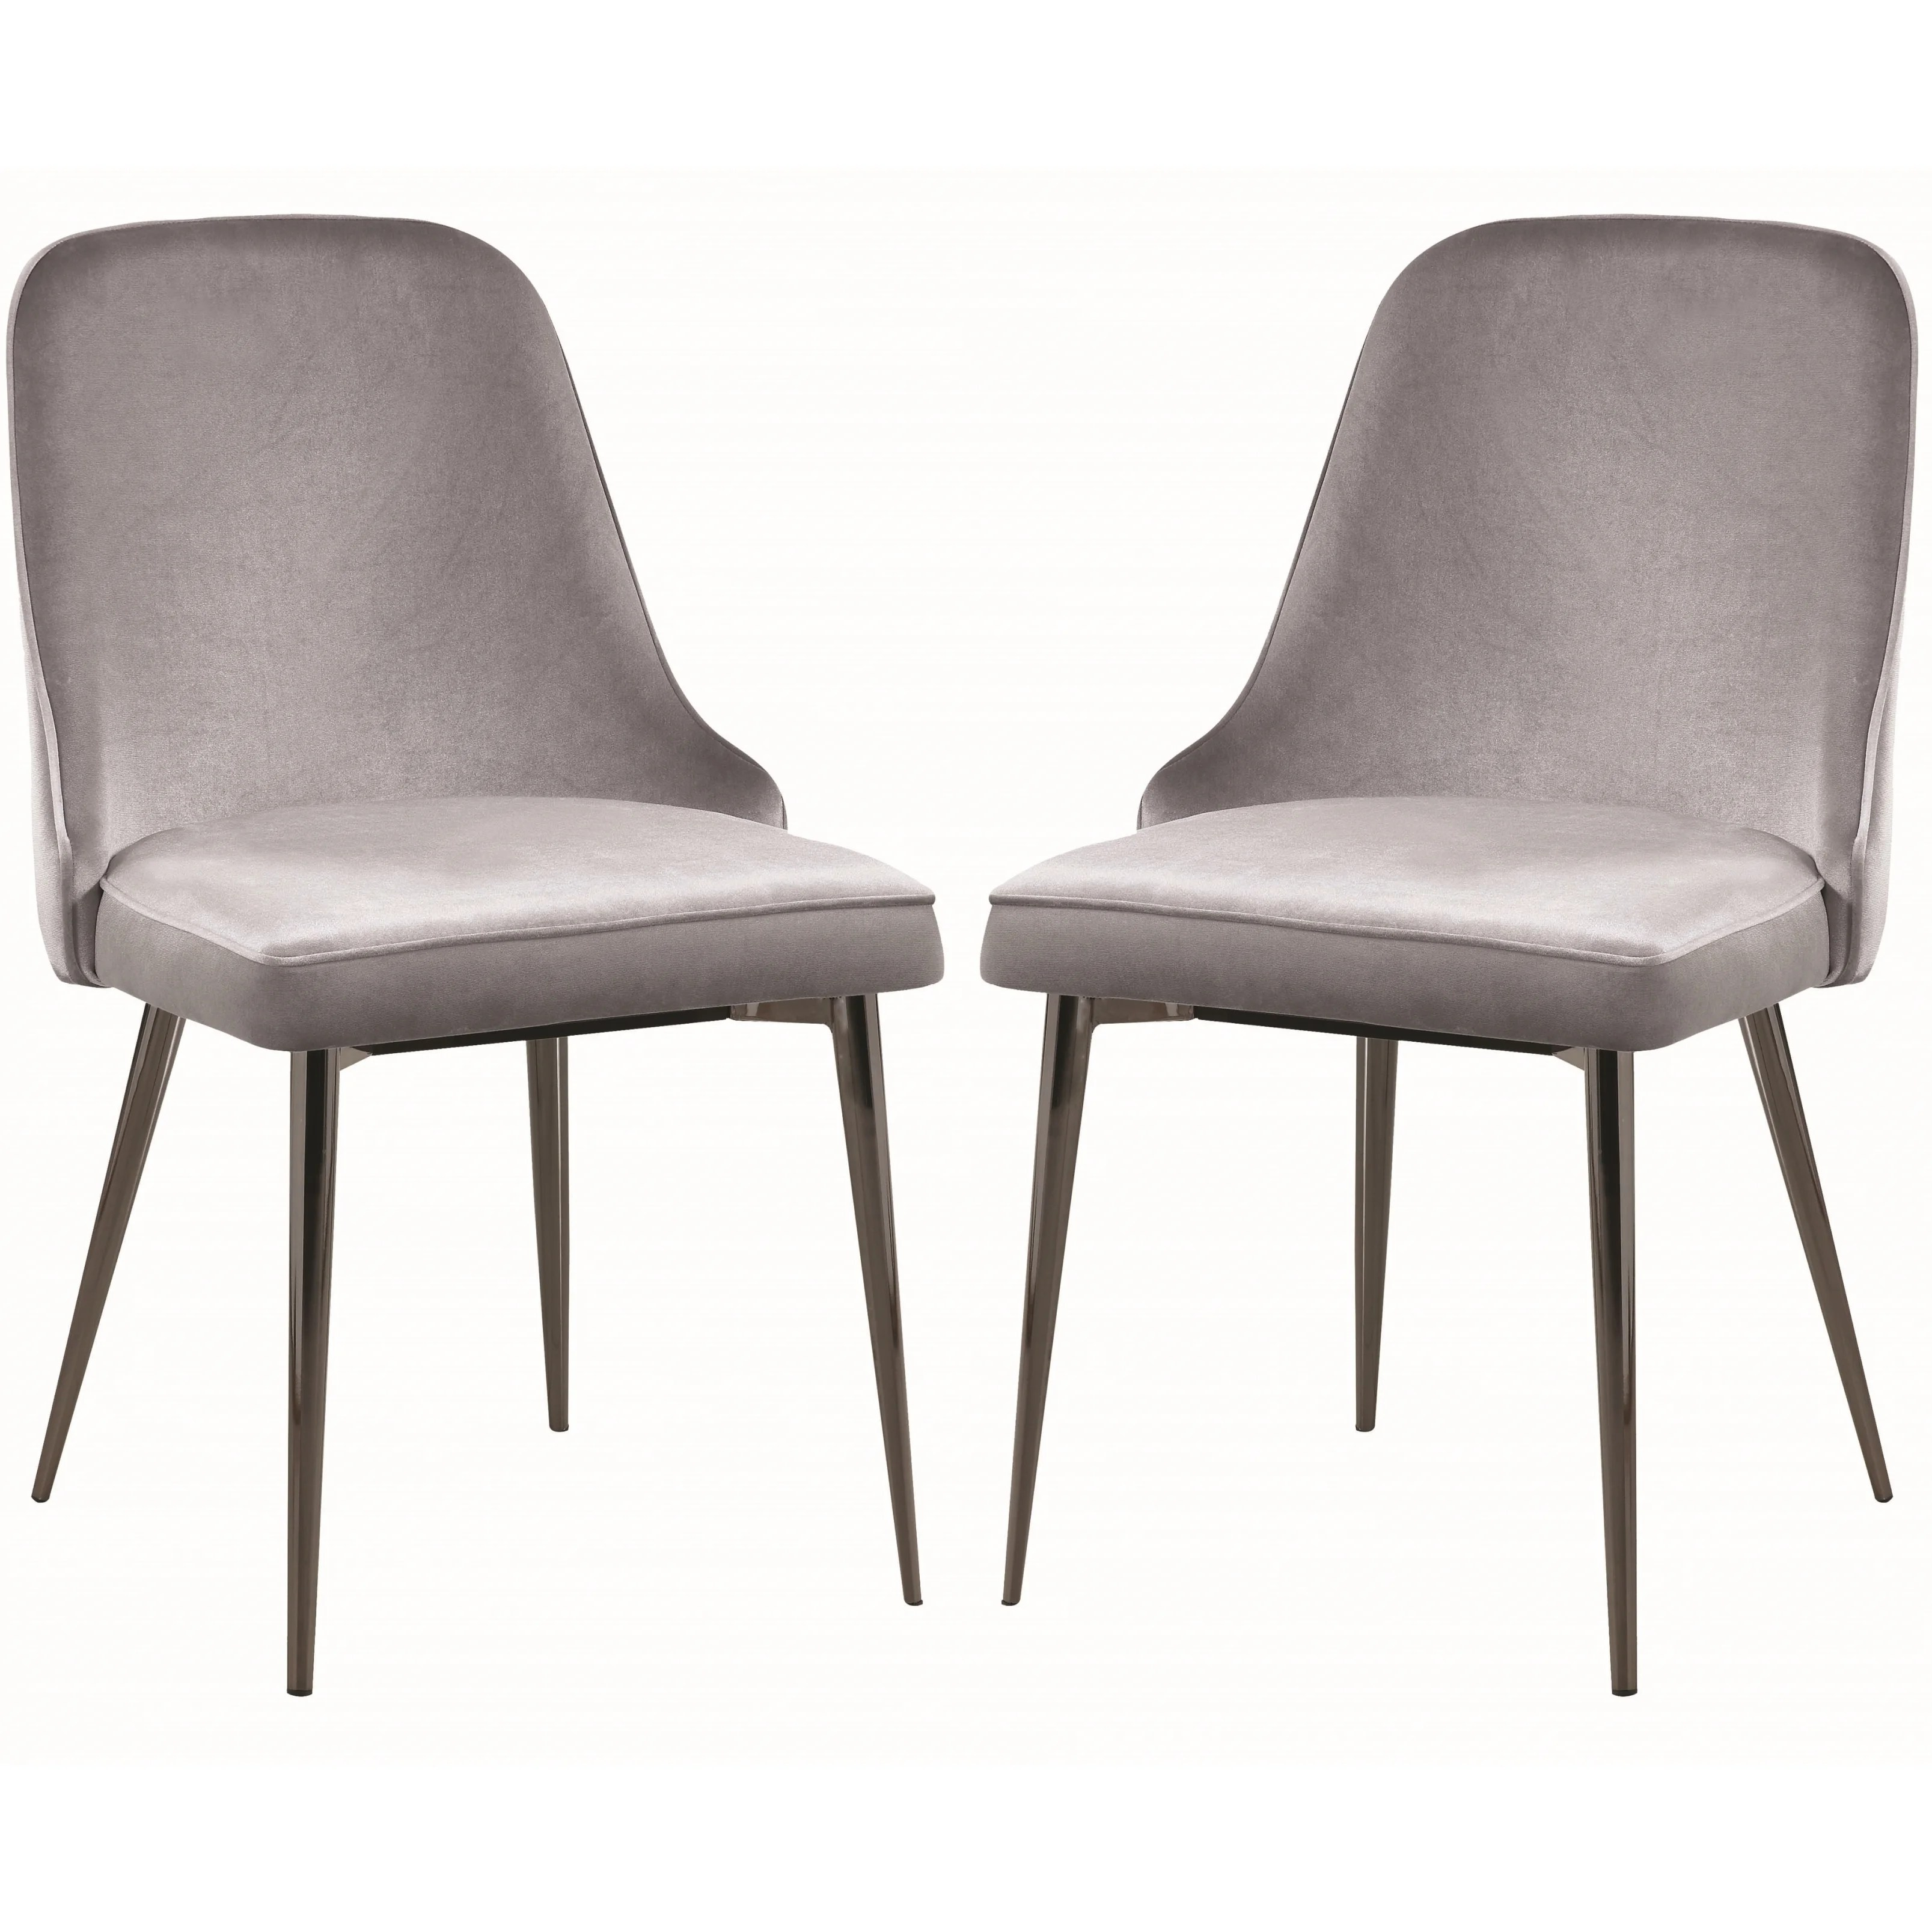 modern gray dining chairs original eames lounge chair shop chic design grey velvet with metal legs set of 4